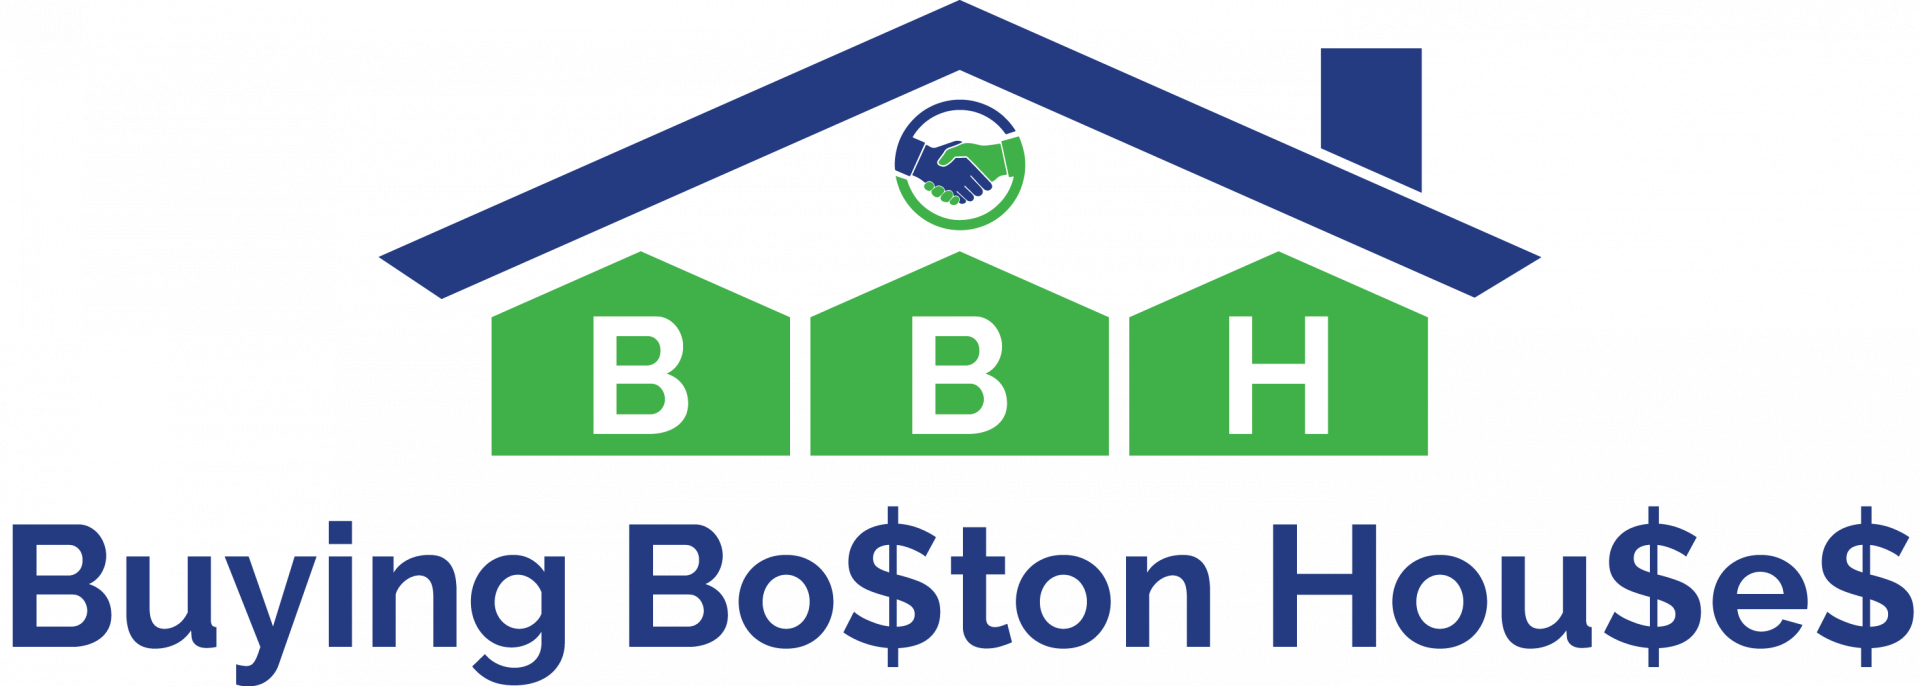 Sell House Fast Wilmington MA - We buy houses Wilmington